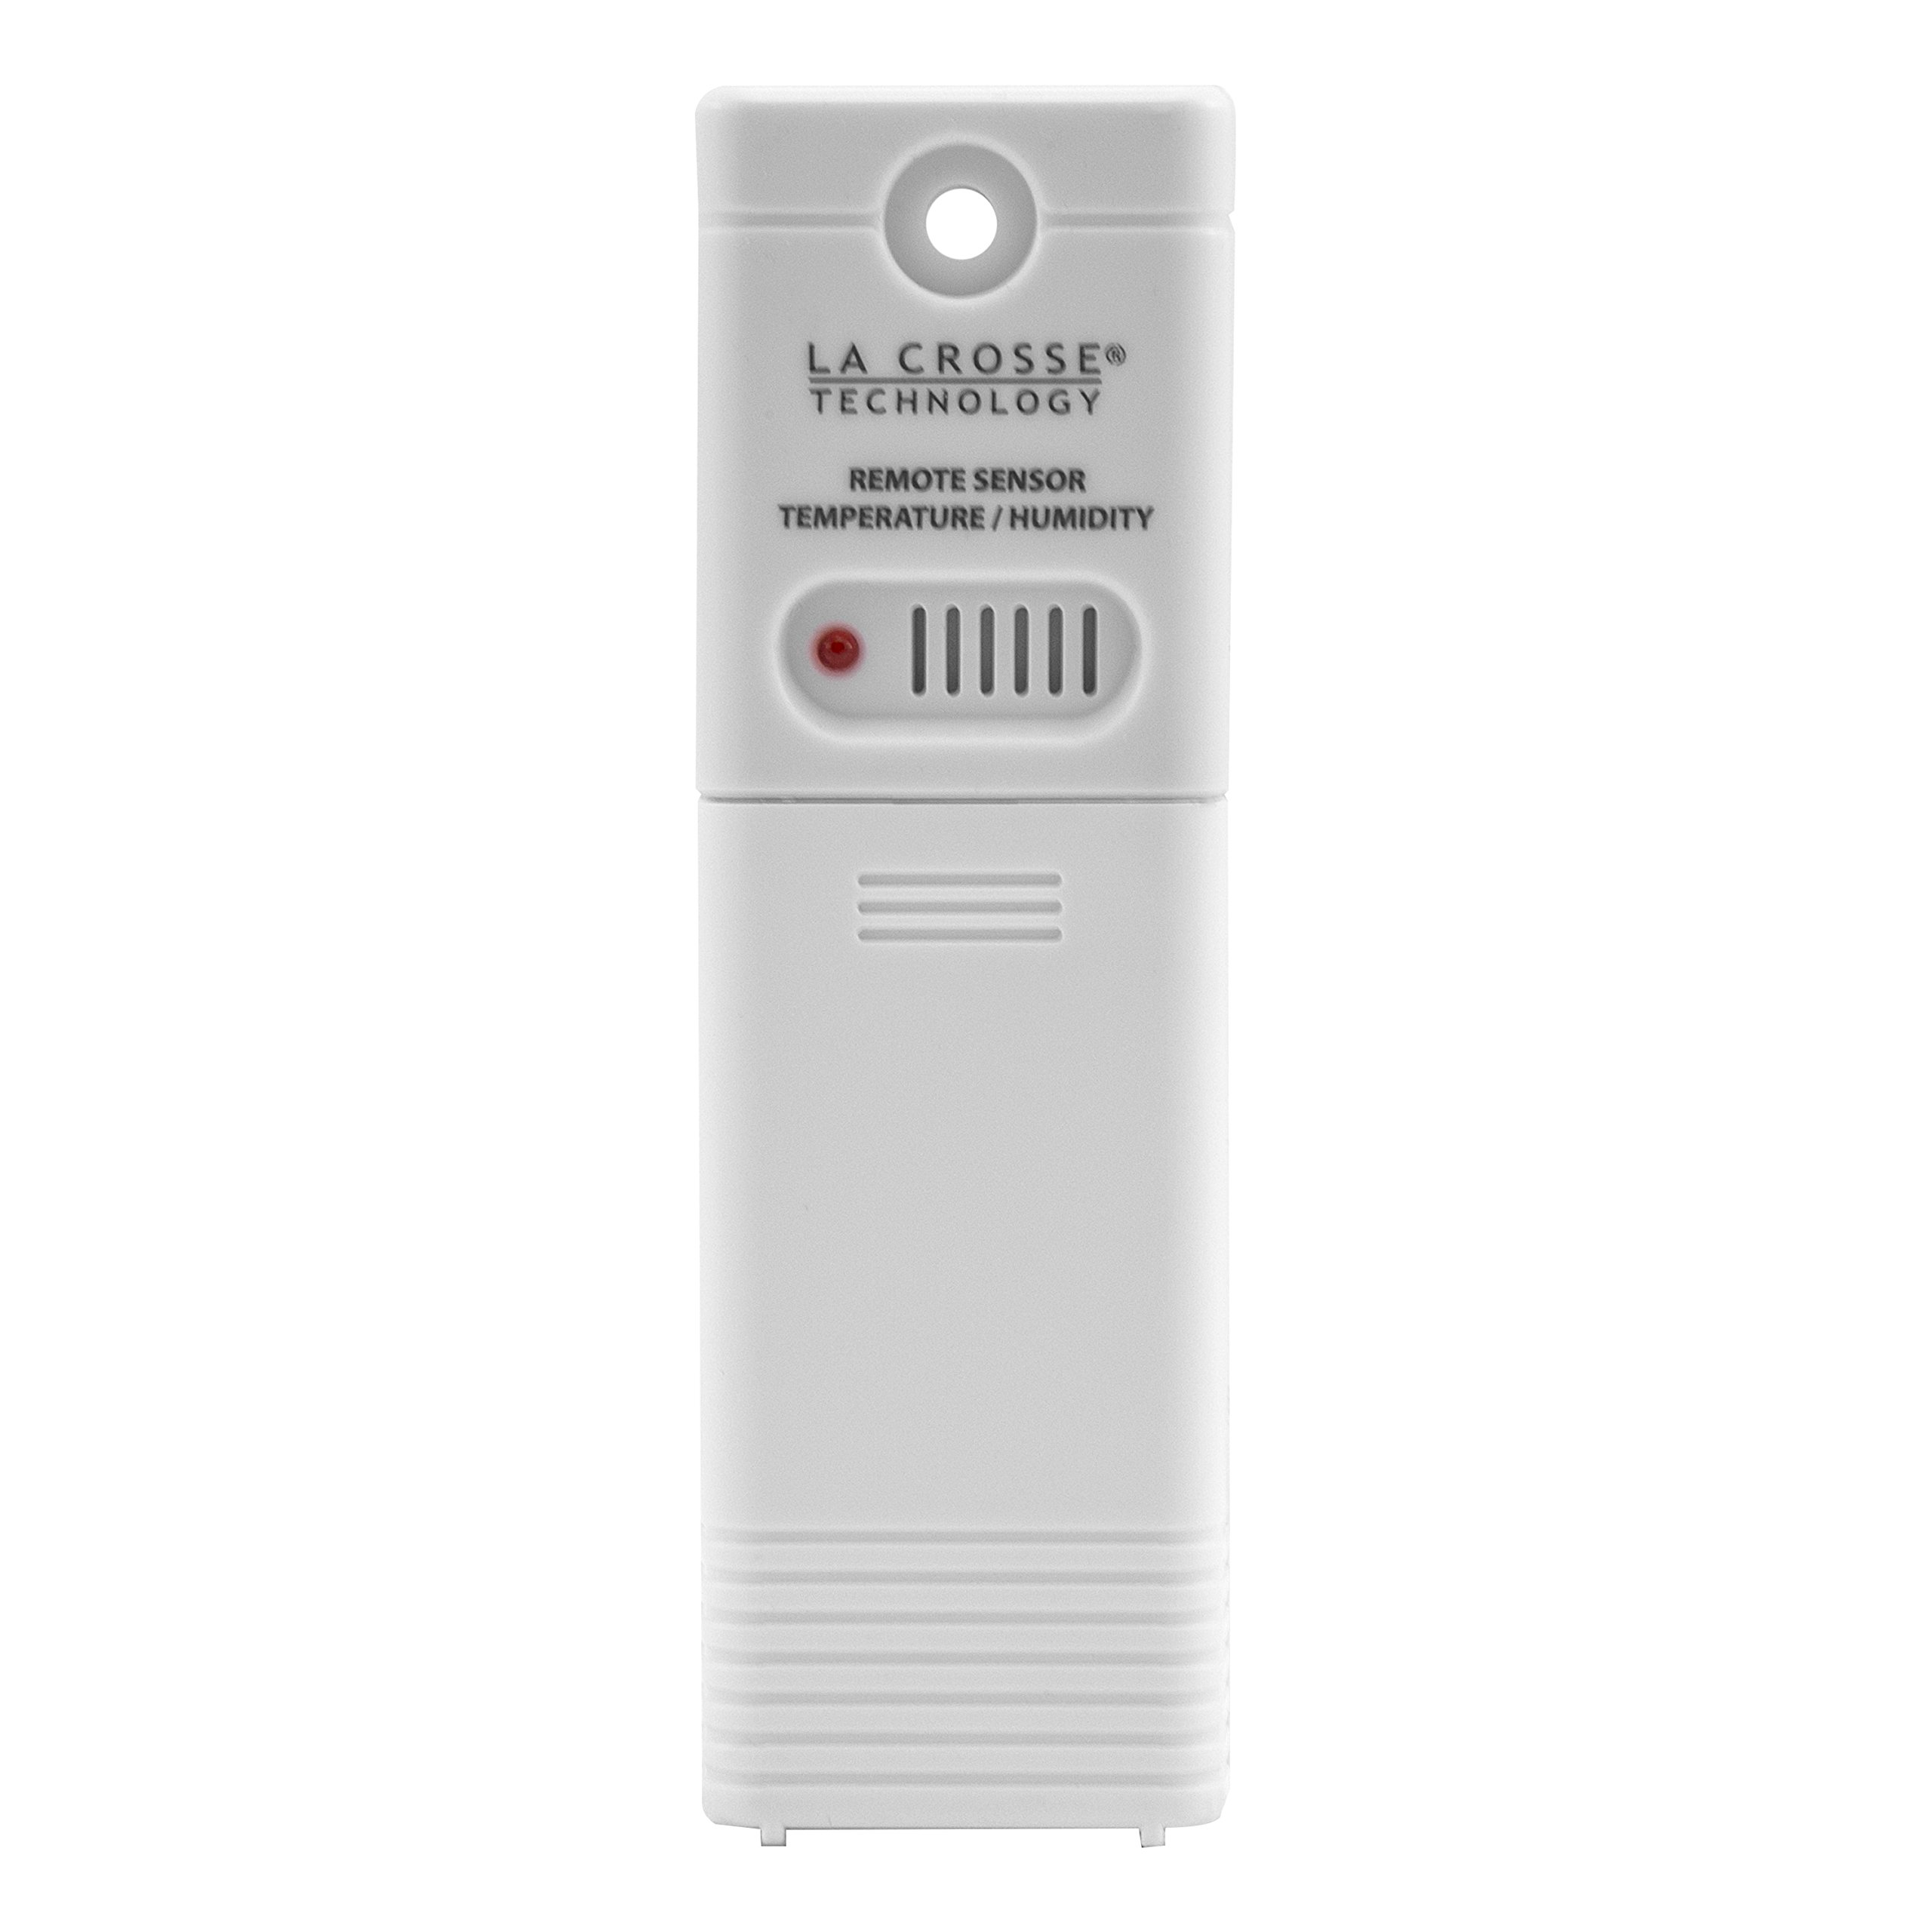 La Crosse Technology TX141TH-Bch Wireless Transmitting Temp/Humidity Sensor